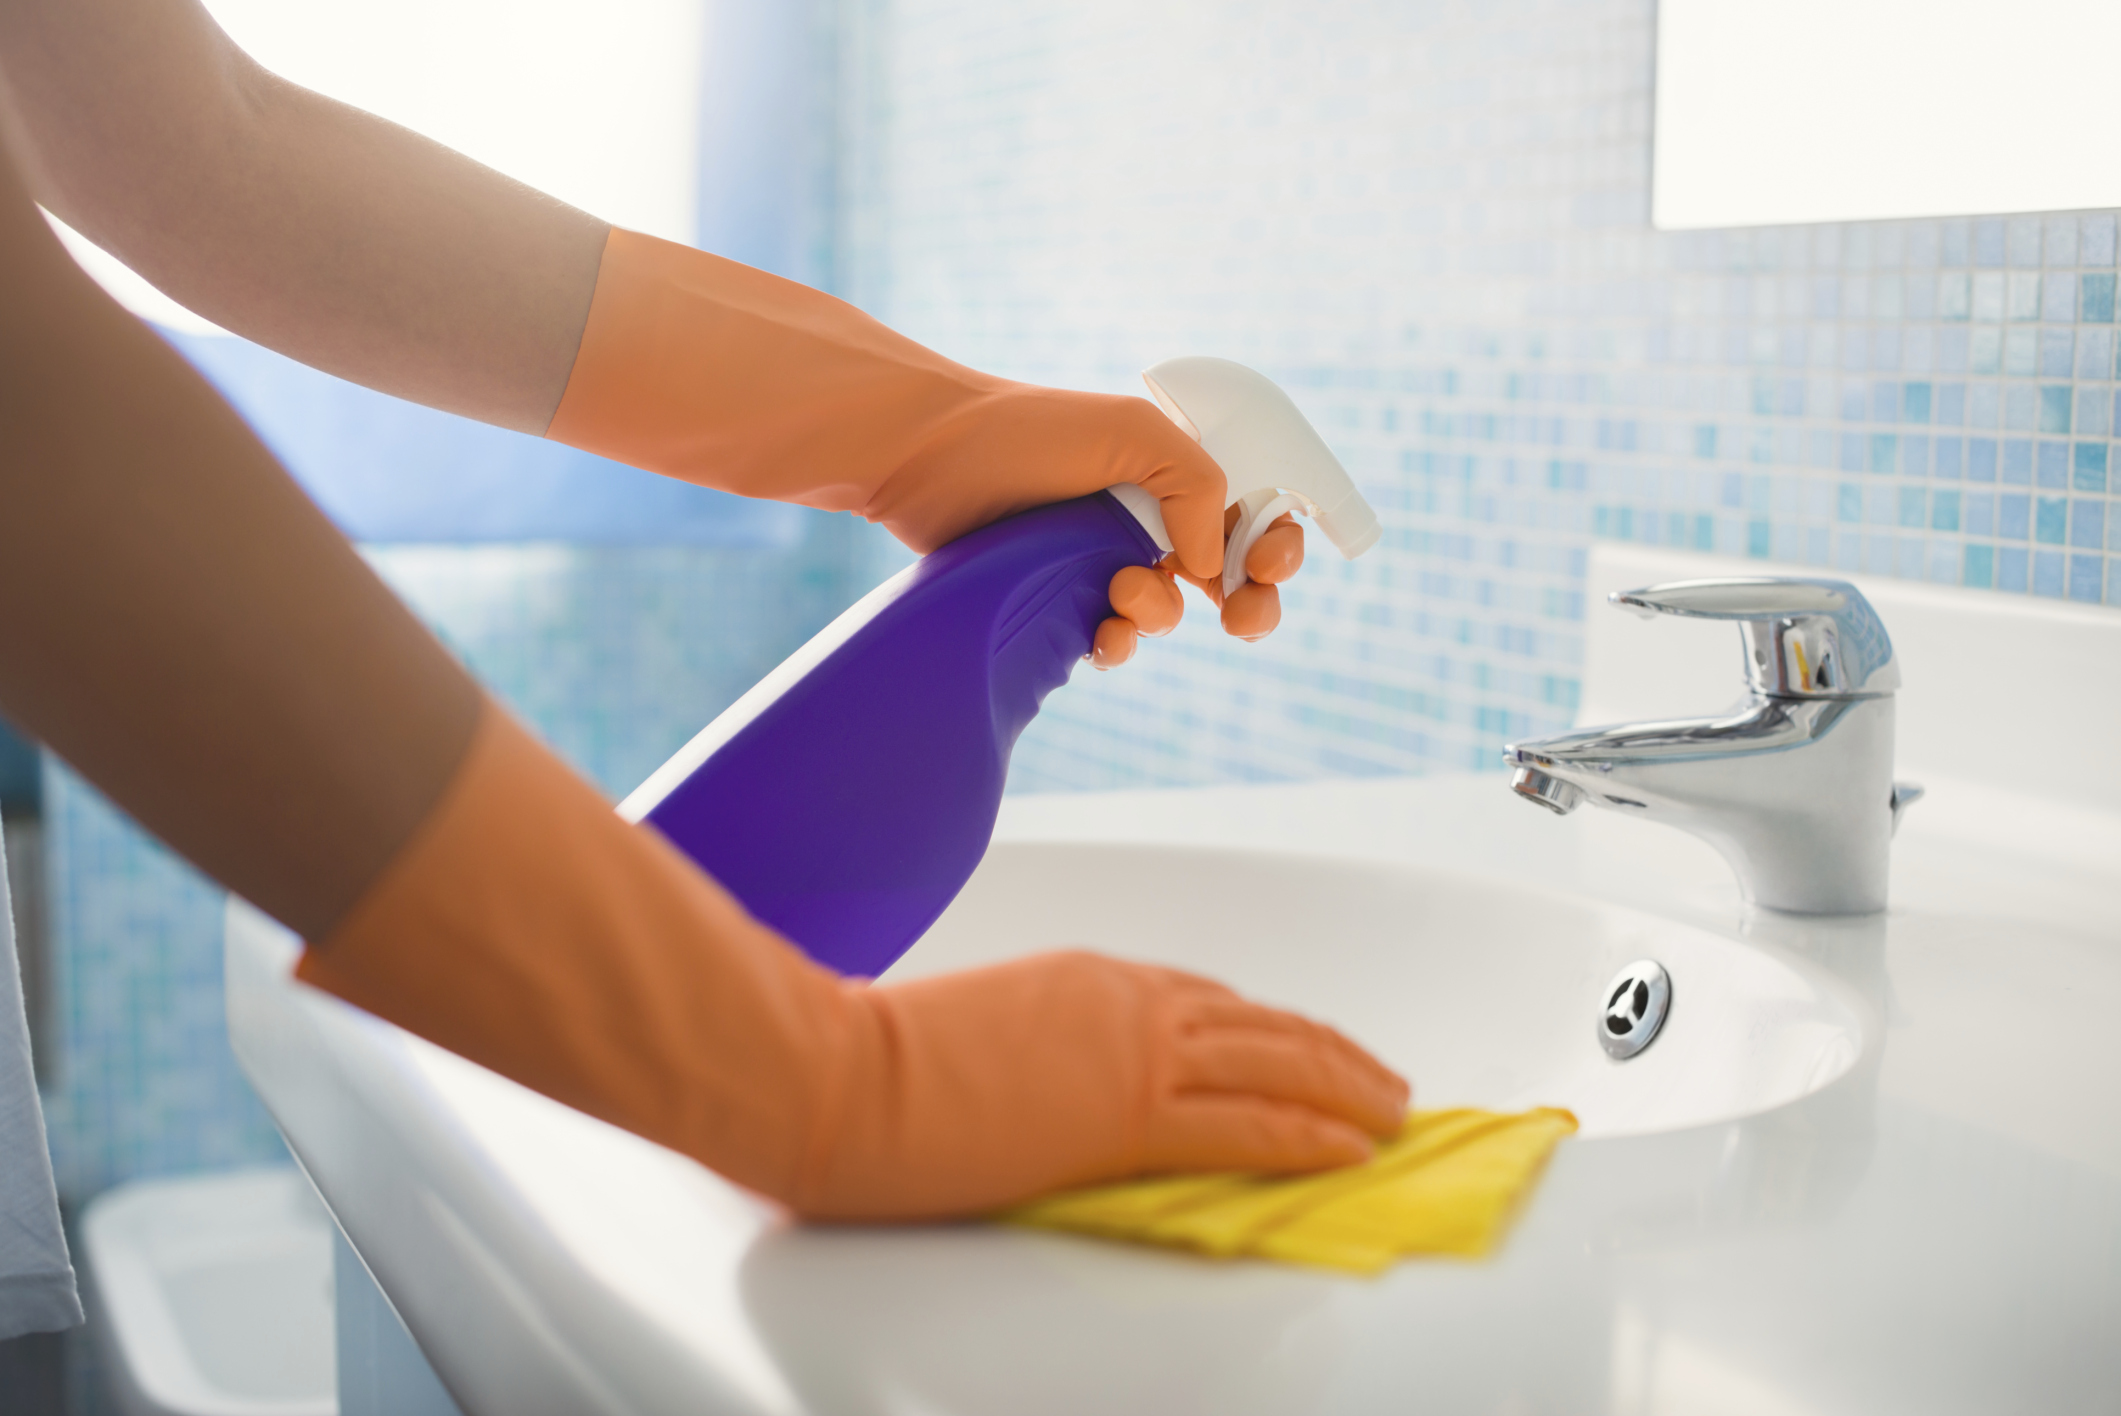 Cleaning with bleach vs vinegar